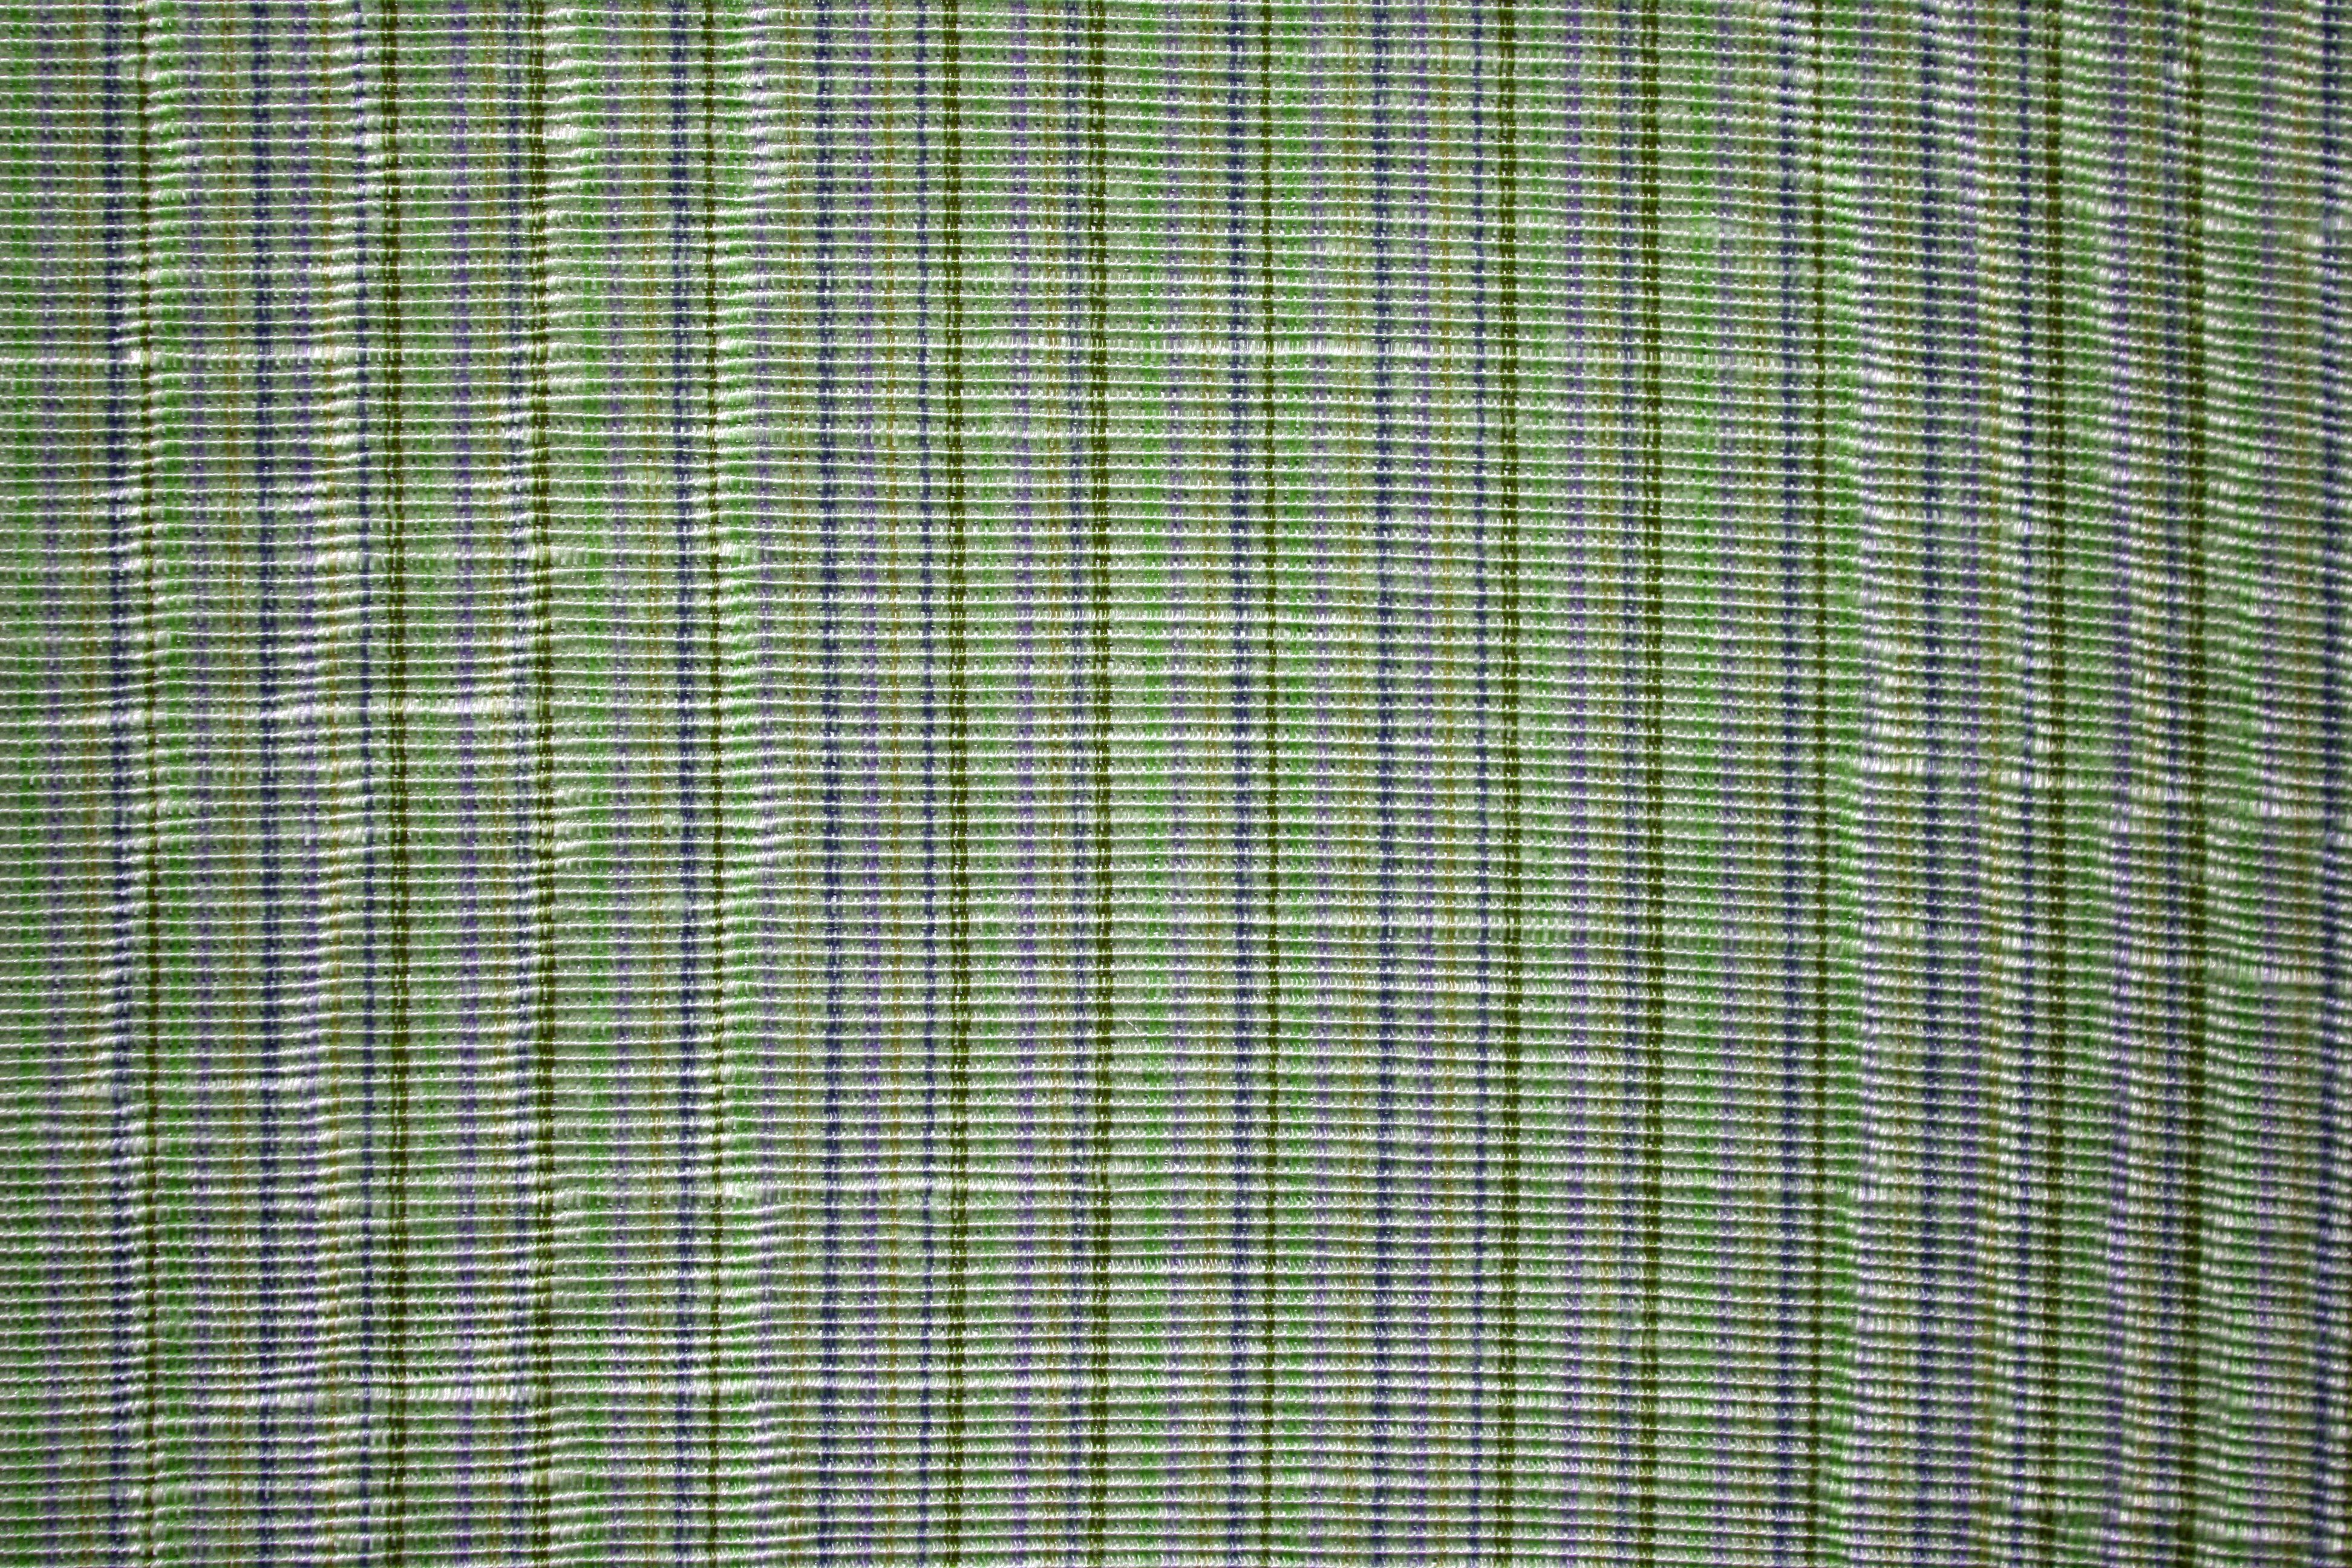 green and purple striped upholstery fabric texture